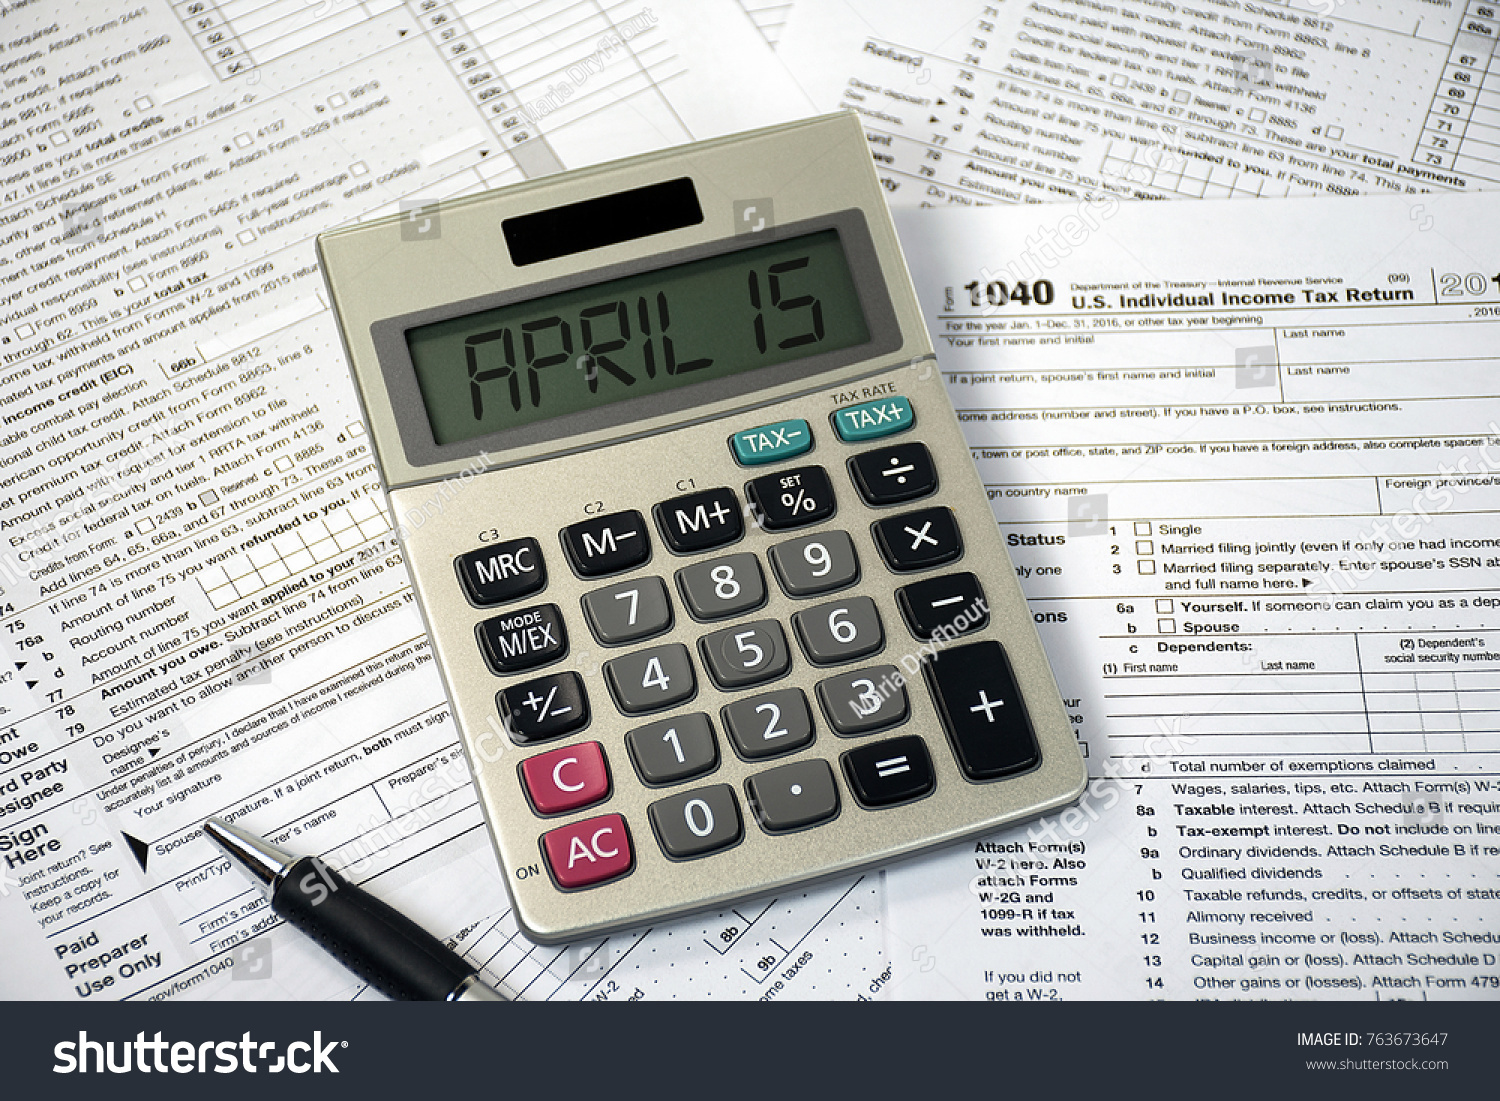 Tax forms with calculator, eyeglasses, pen and sticky note stock.